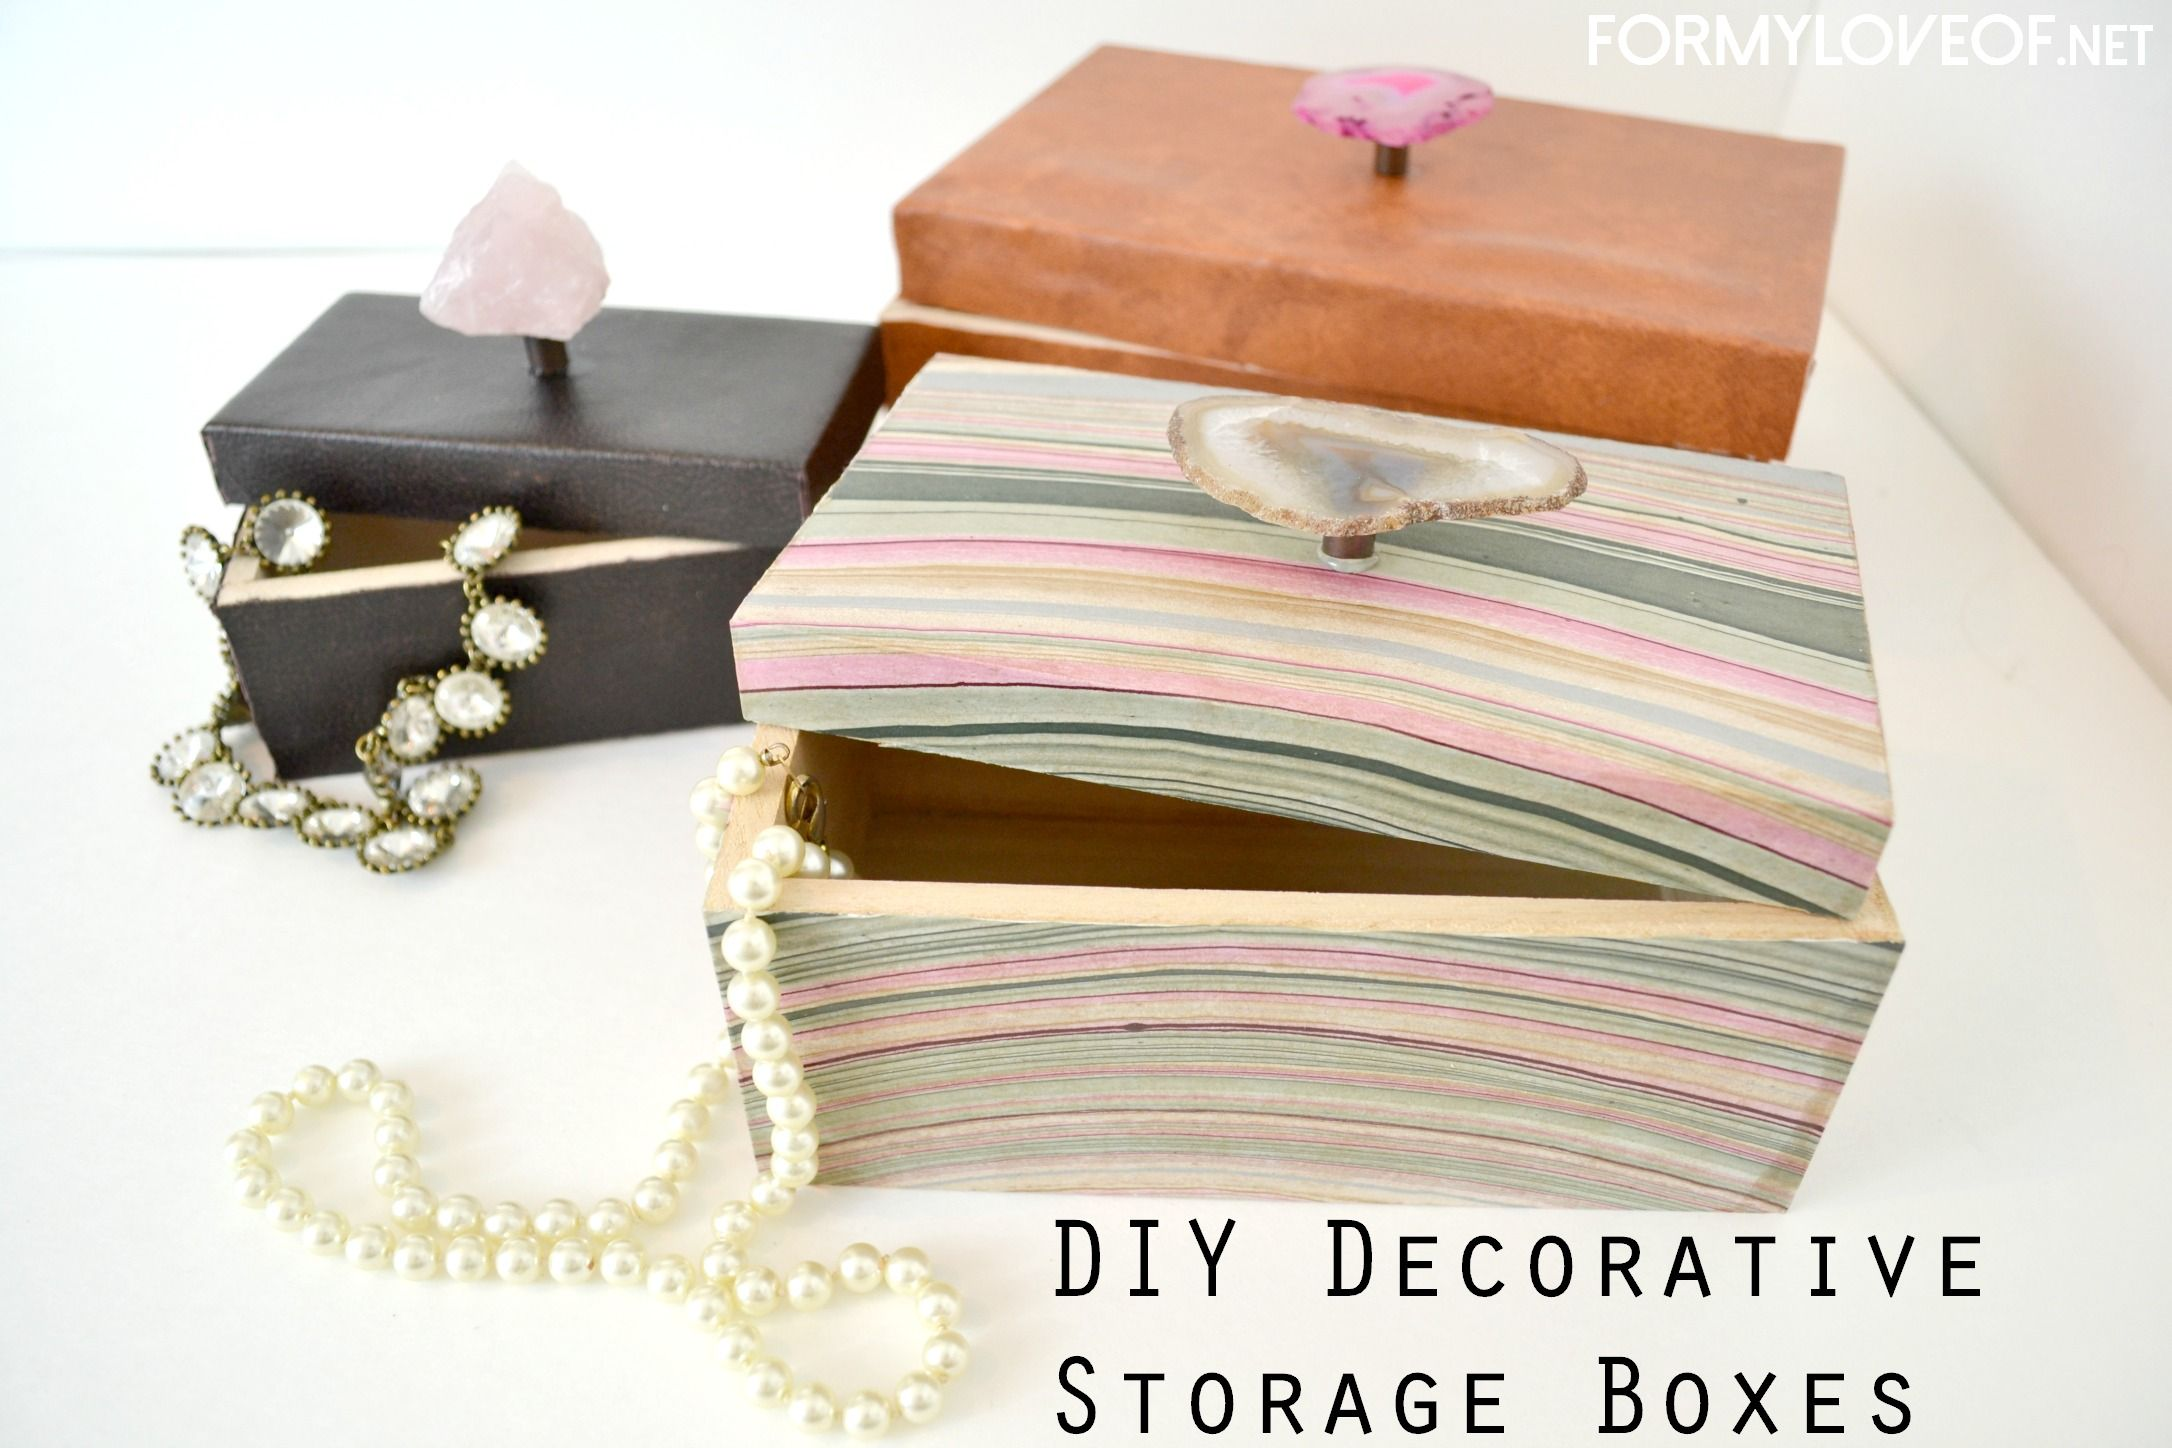 Storage Boxes Decorative Fabric Diy Fabric Covered Box  Kimmel  Pinterest  Fabric Covered Boxes